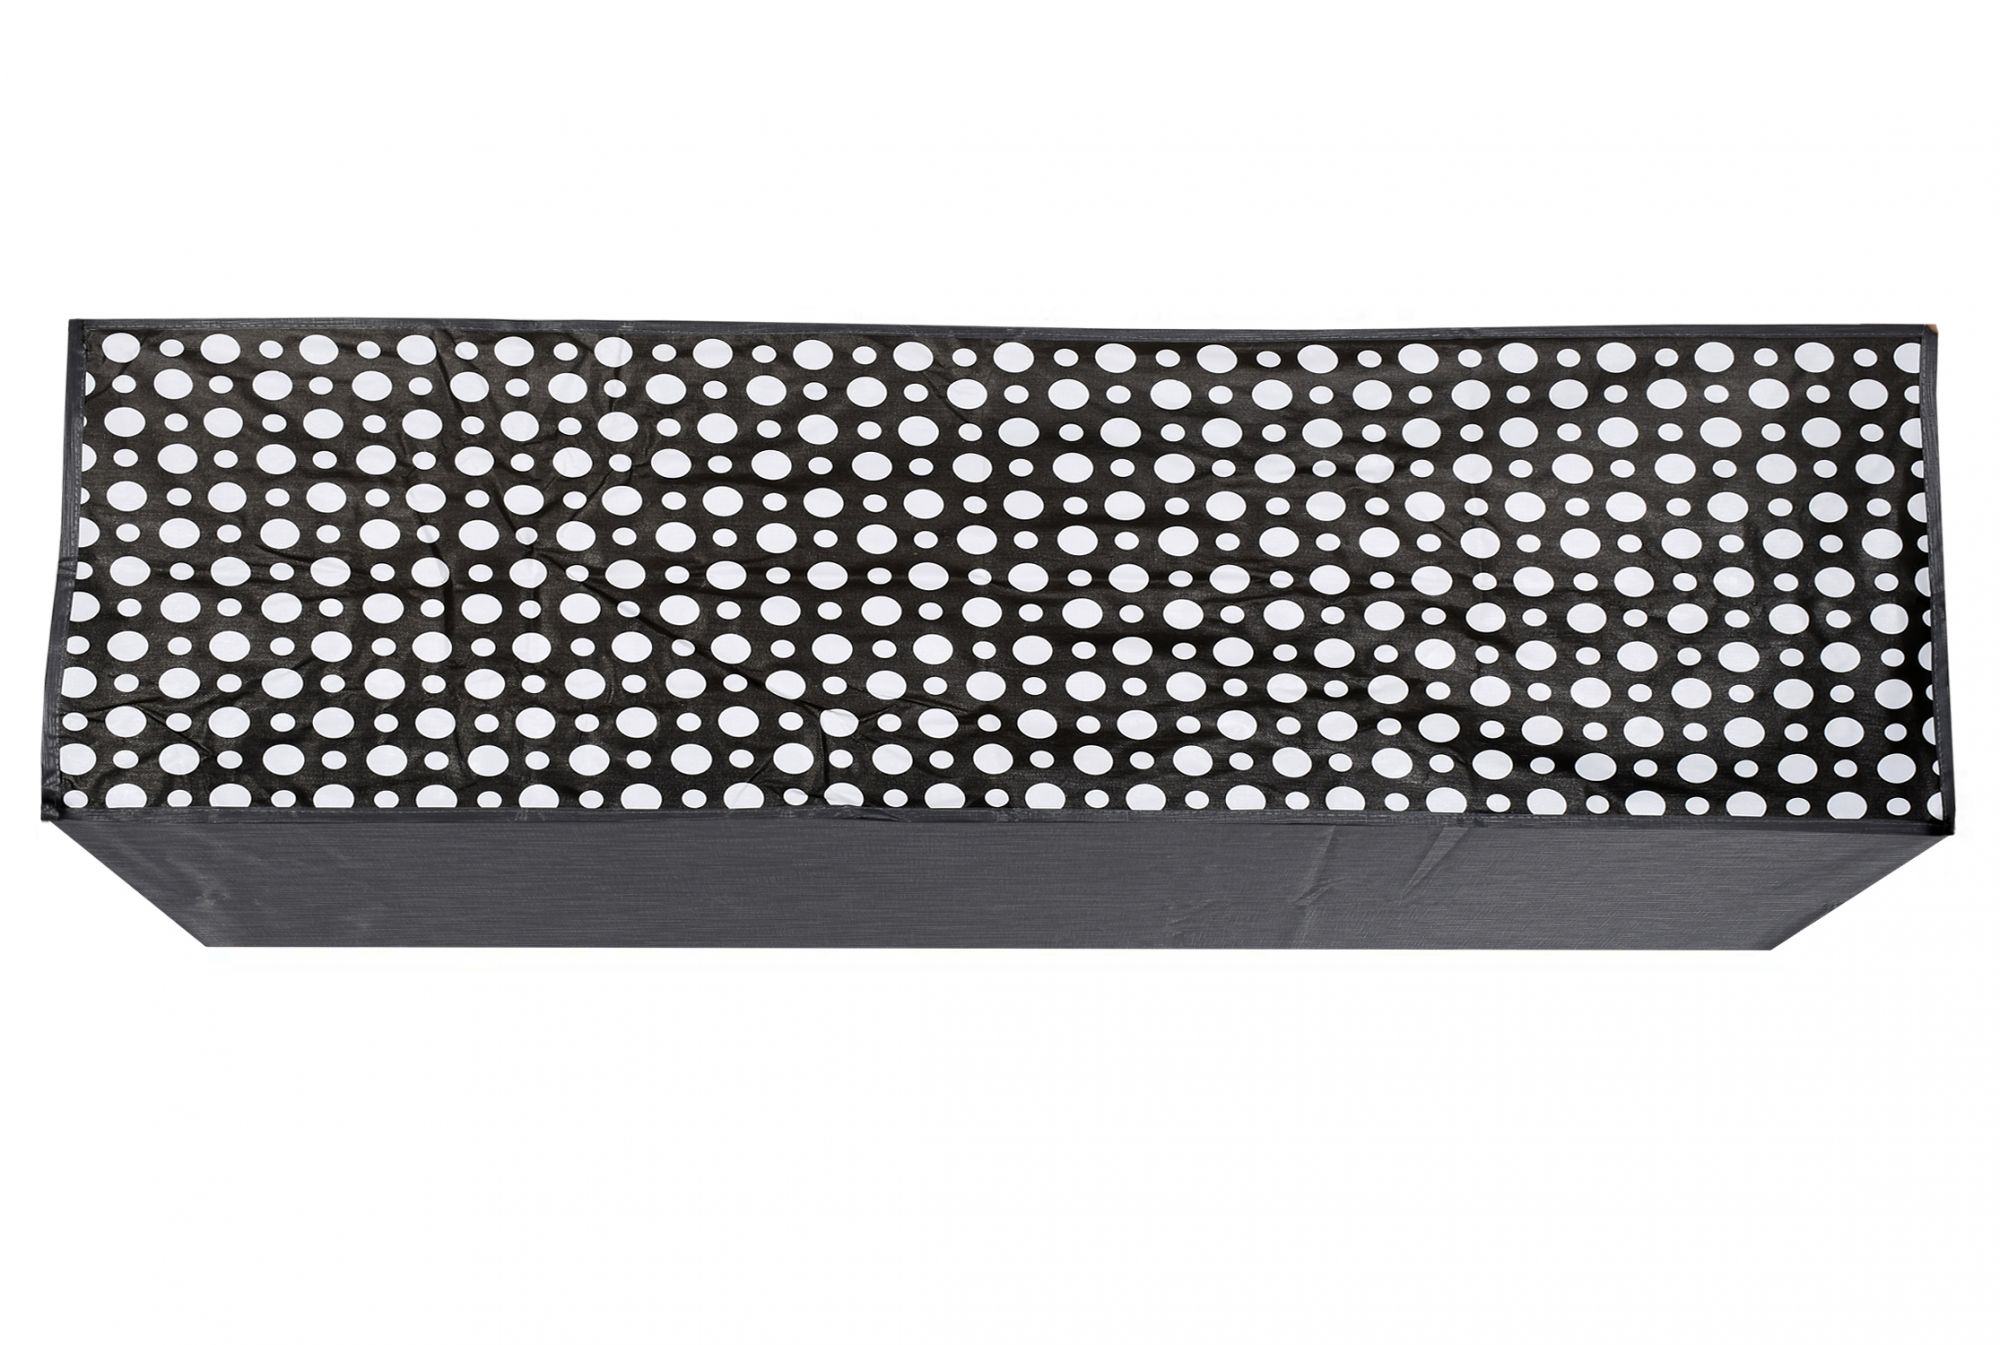 Kuber Industries Polka Dots Design PVC Air Conditioning Dust Cover Indoor and Outdoor Waterproof Folding Spilt Ac Cover Set for 1.5 Ton AC (Grey) - CTKTC40727